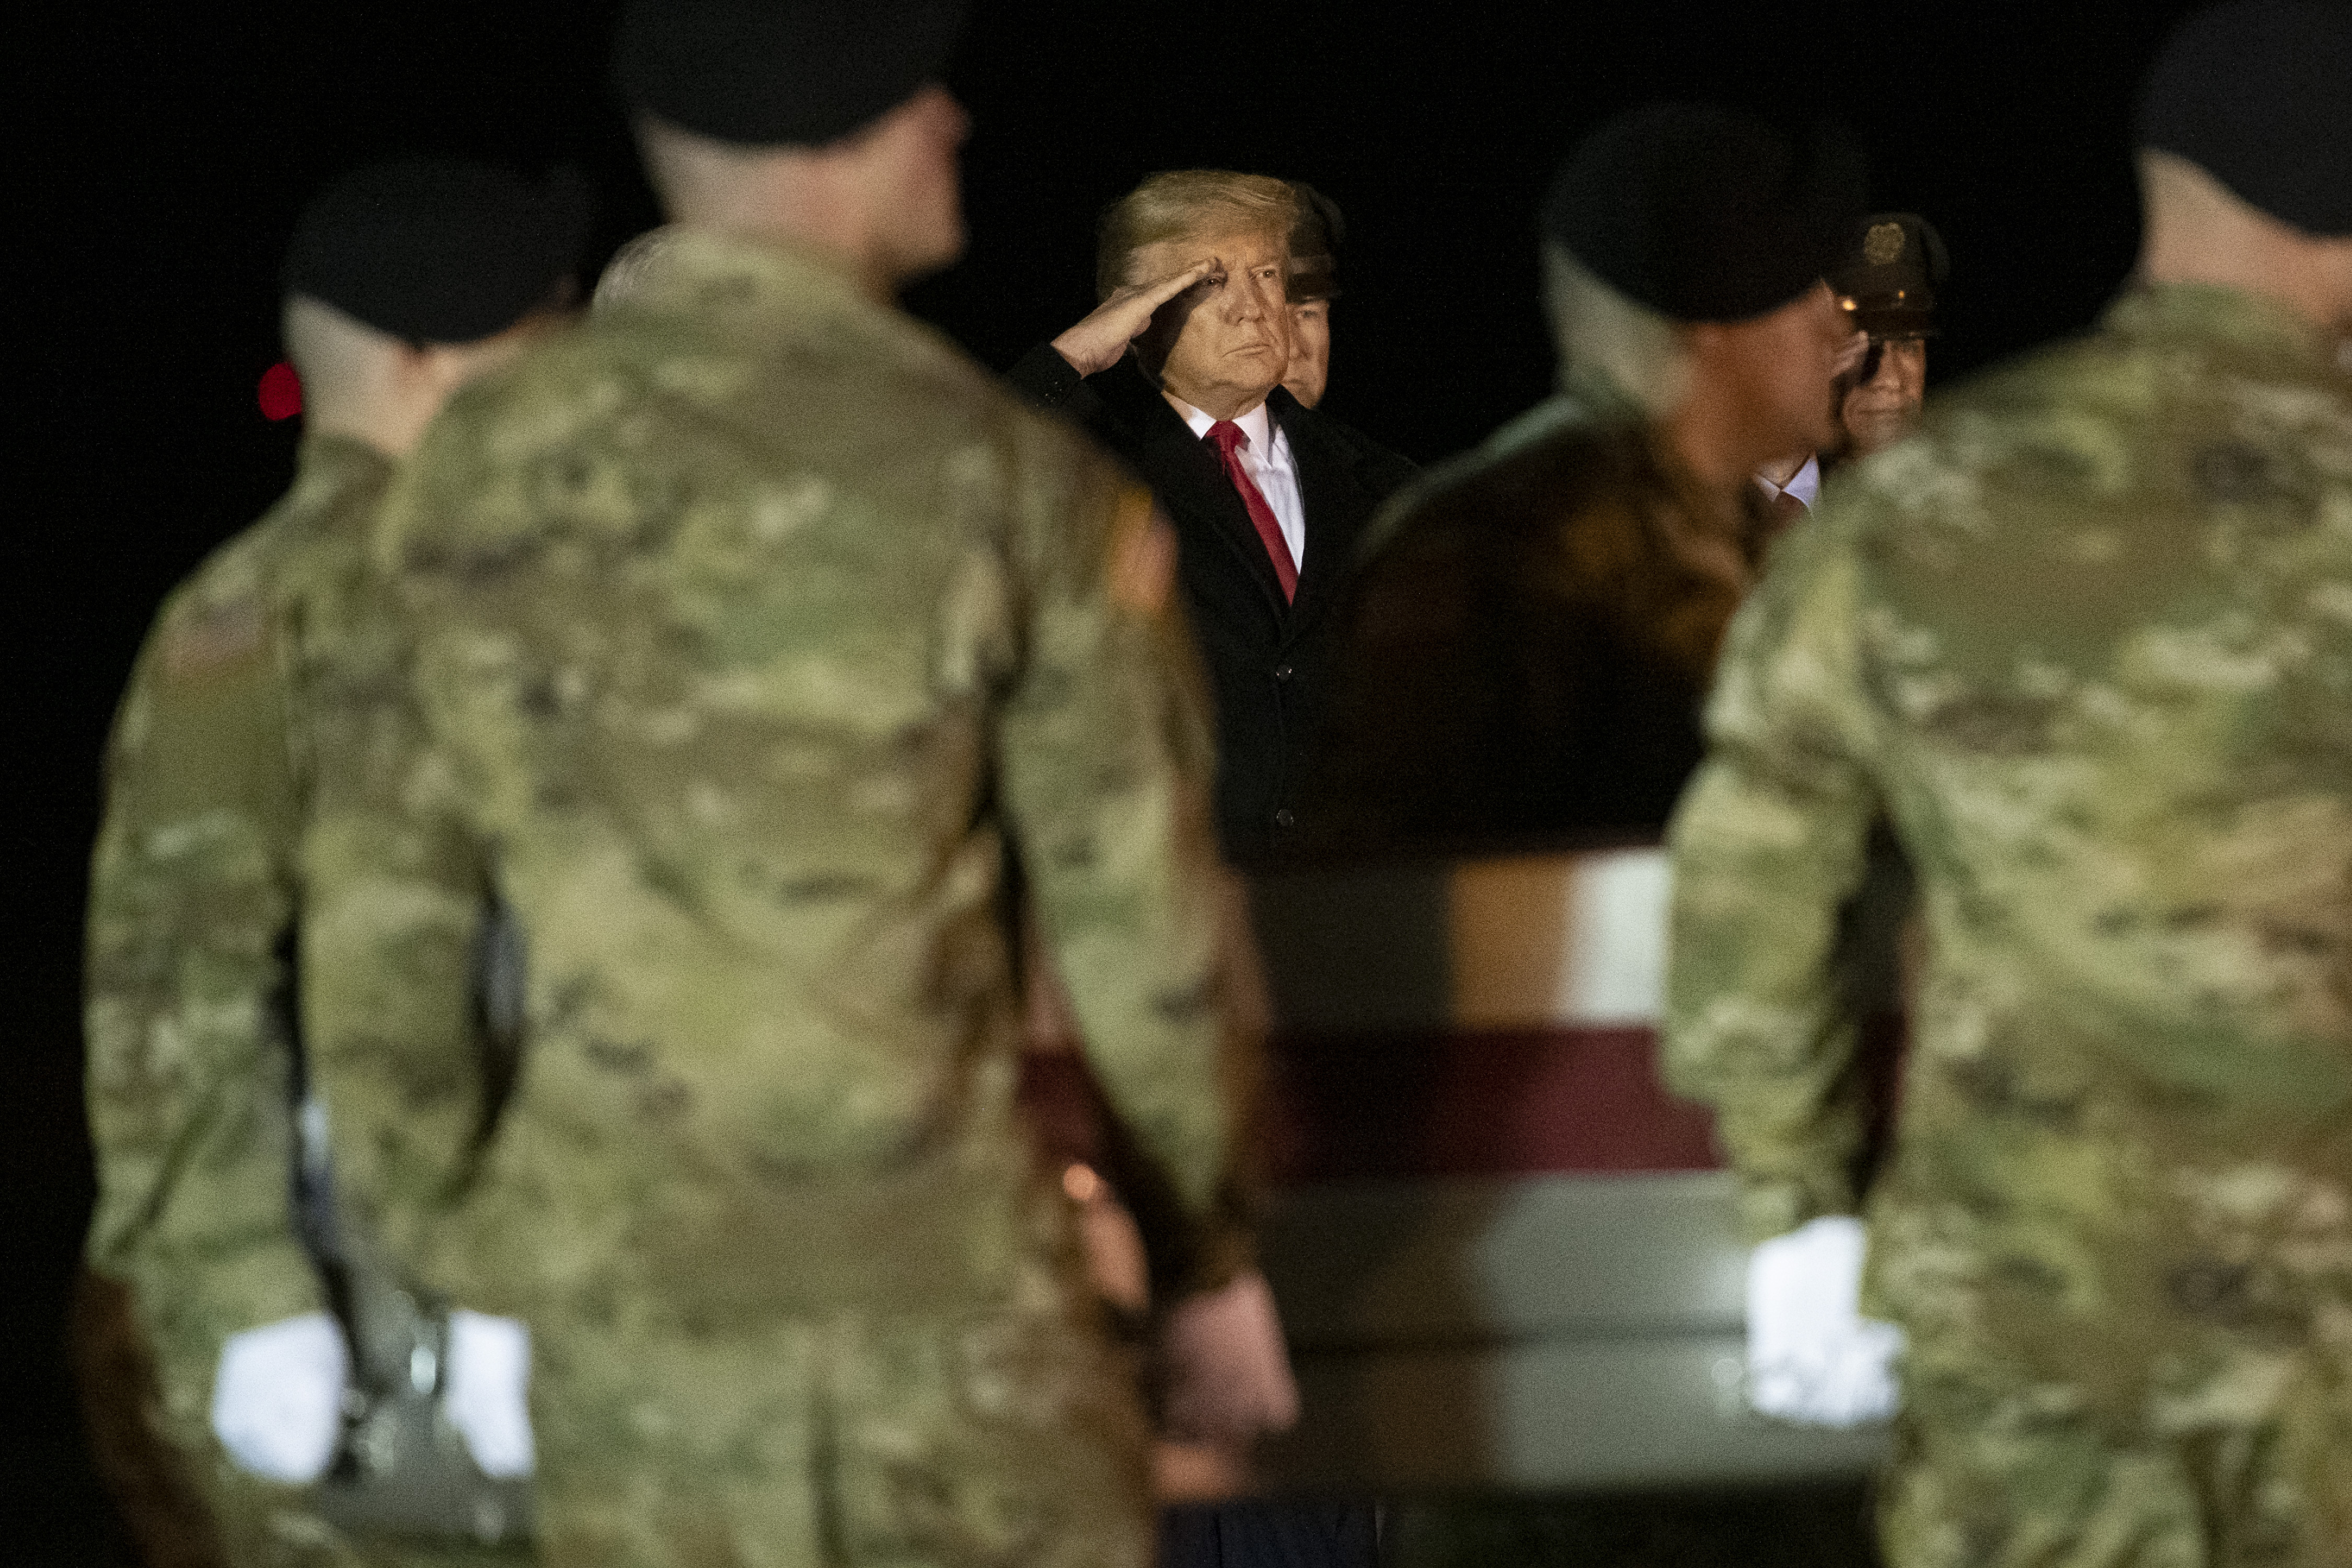 DOVER, DE - FEBRUARY 10: U.S. President Donald Trump watches as military personnel carry a transfer case for fallen service member, U.S. Army Sgt. 1st Class Javier J. Gutierrez, 28, during a dignified transfer at Dover Air Force Base on February 10, 2020 in Dover, Delaware. Gutierrez and U.S. Army Sgt. 1st Class Antonio R. Rodriguez were both killed in an attack in the Nangarhar province of Afghanistan on Saturday, according to a Department of Defense release. (Photo by Mark Makela/Getty Images)